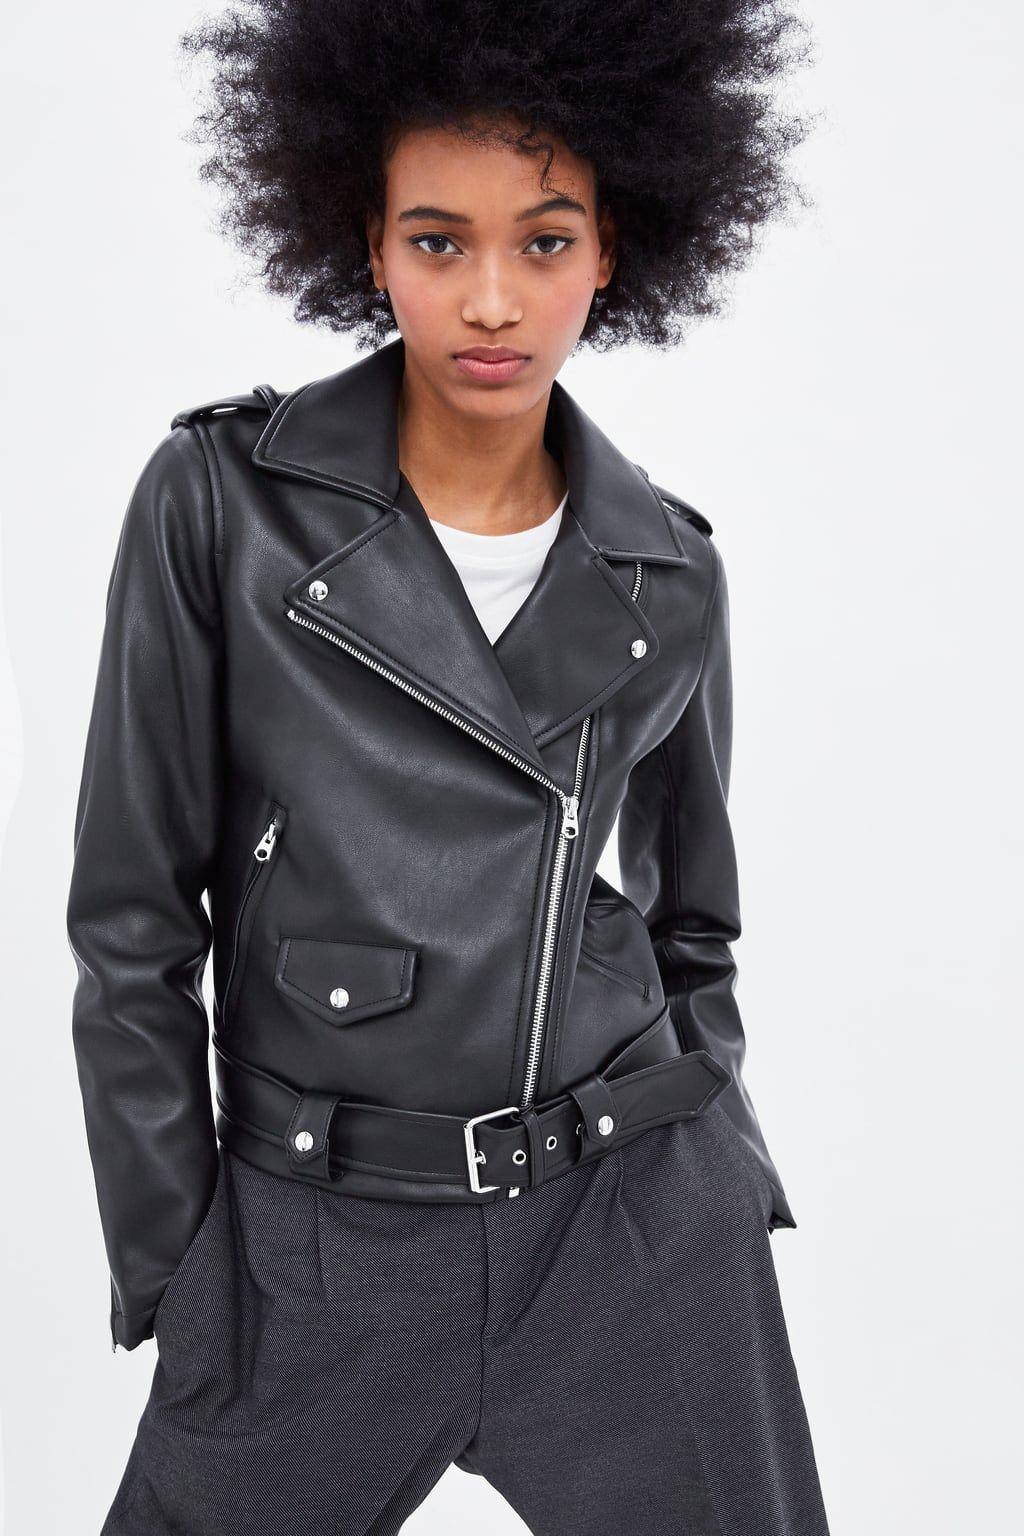 Faux leather jacket (With images) Jackets for women